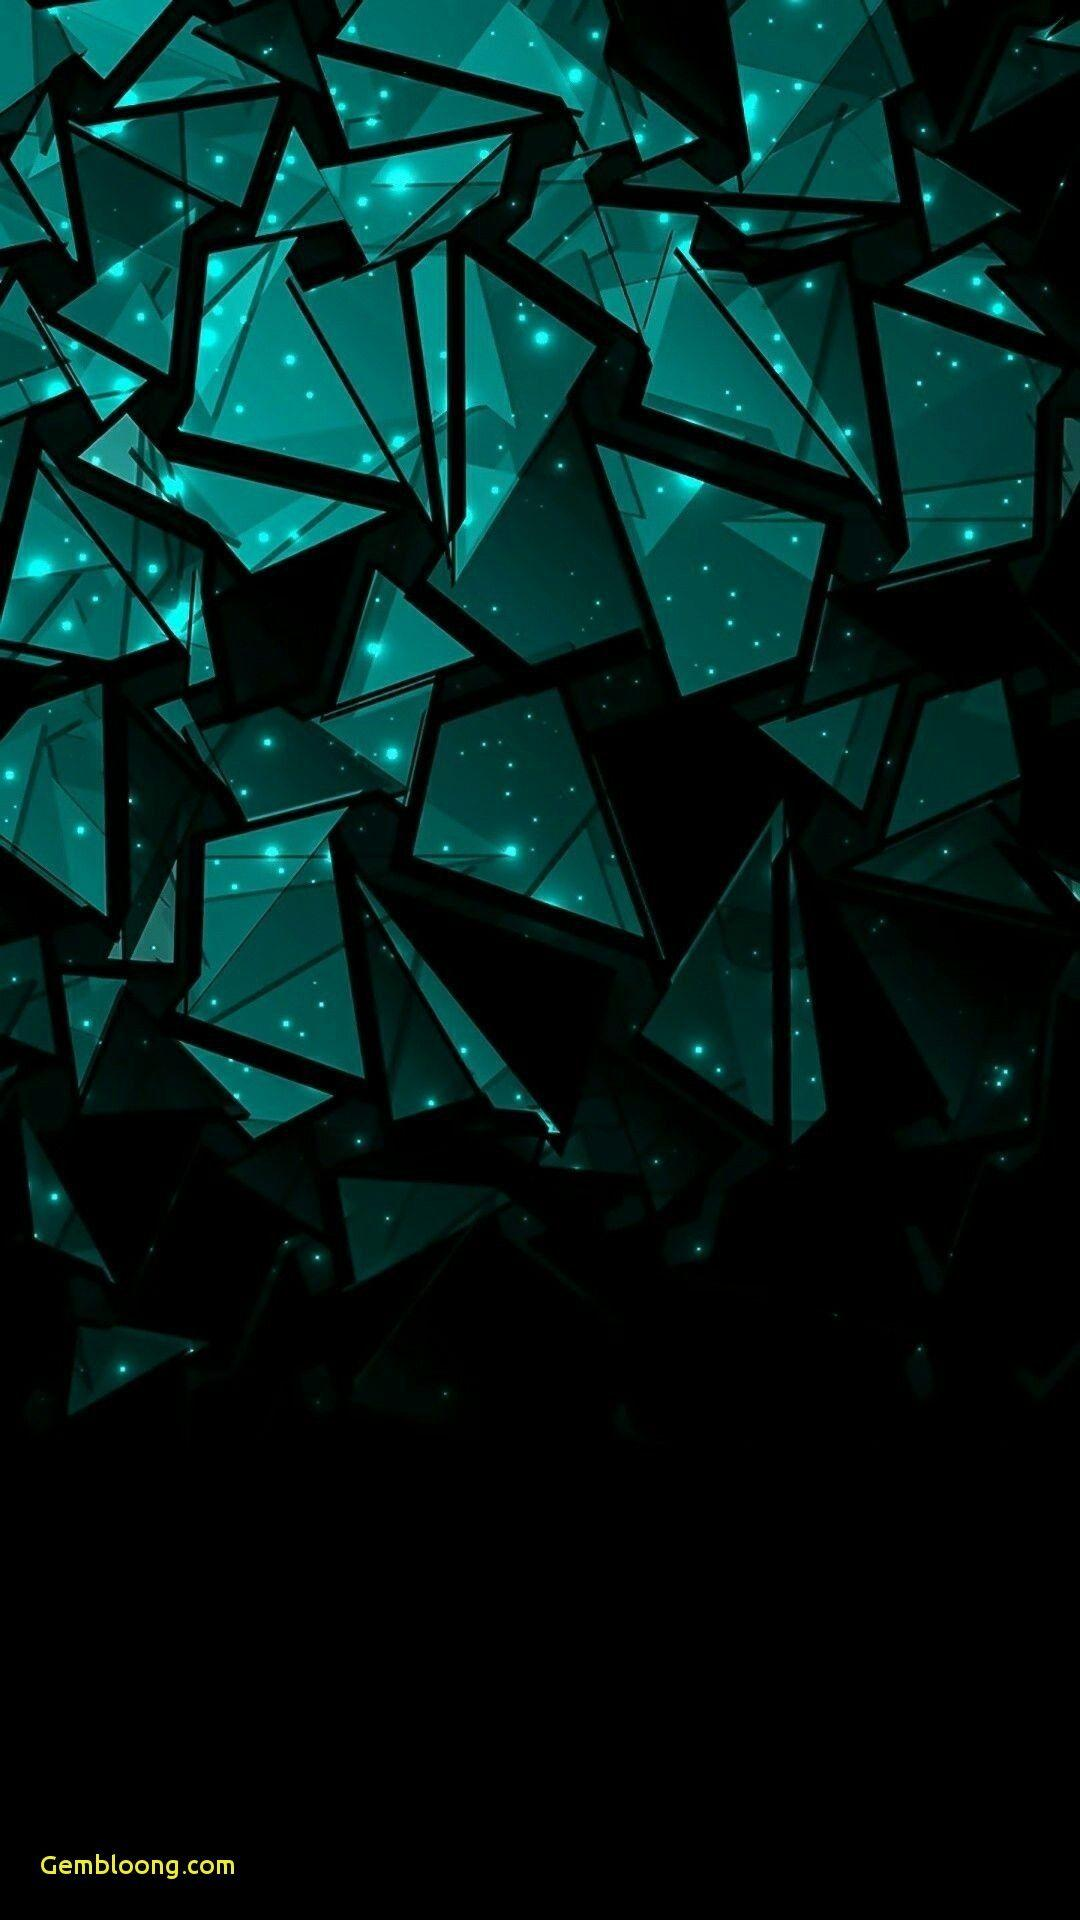 Pocophone Wallpapers - Wallpaper Cave